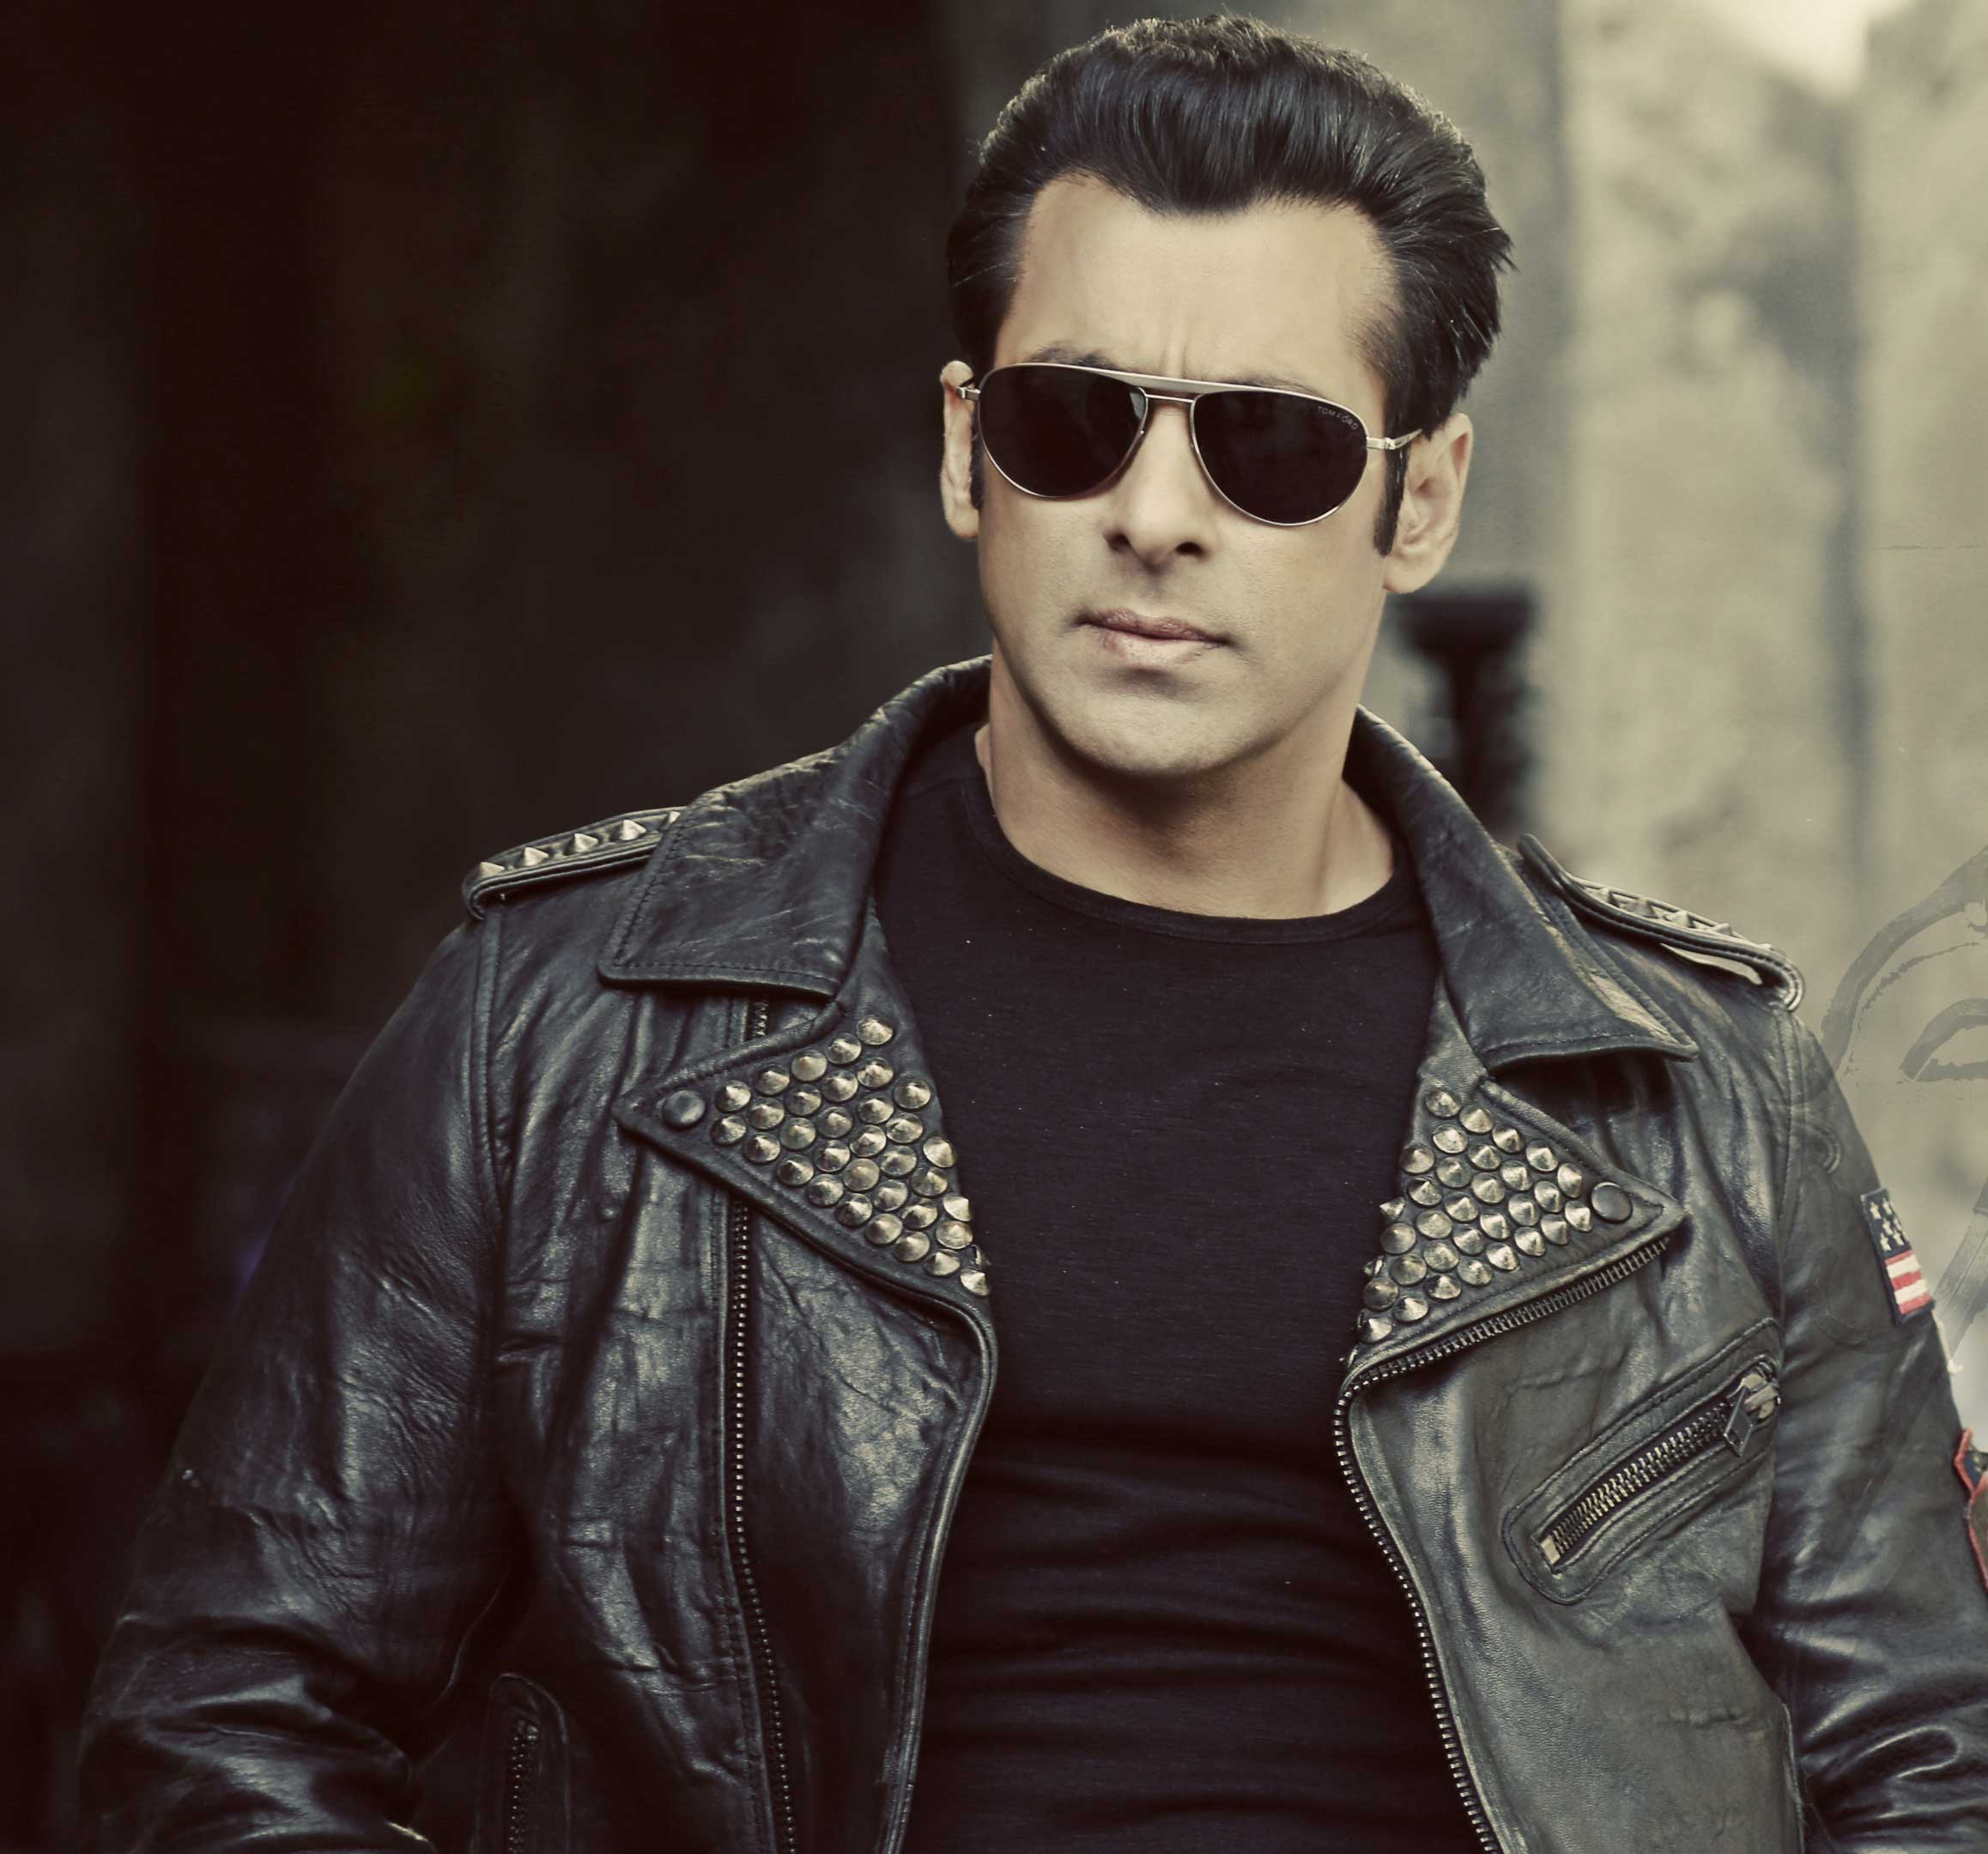 Salman Khan Images HD Free 56